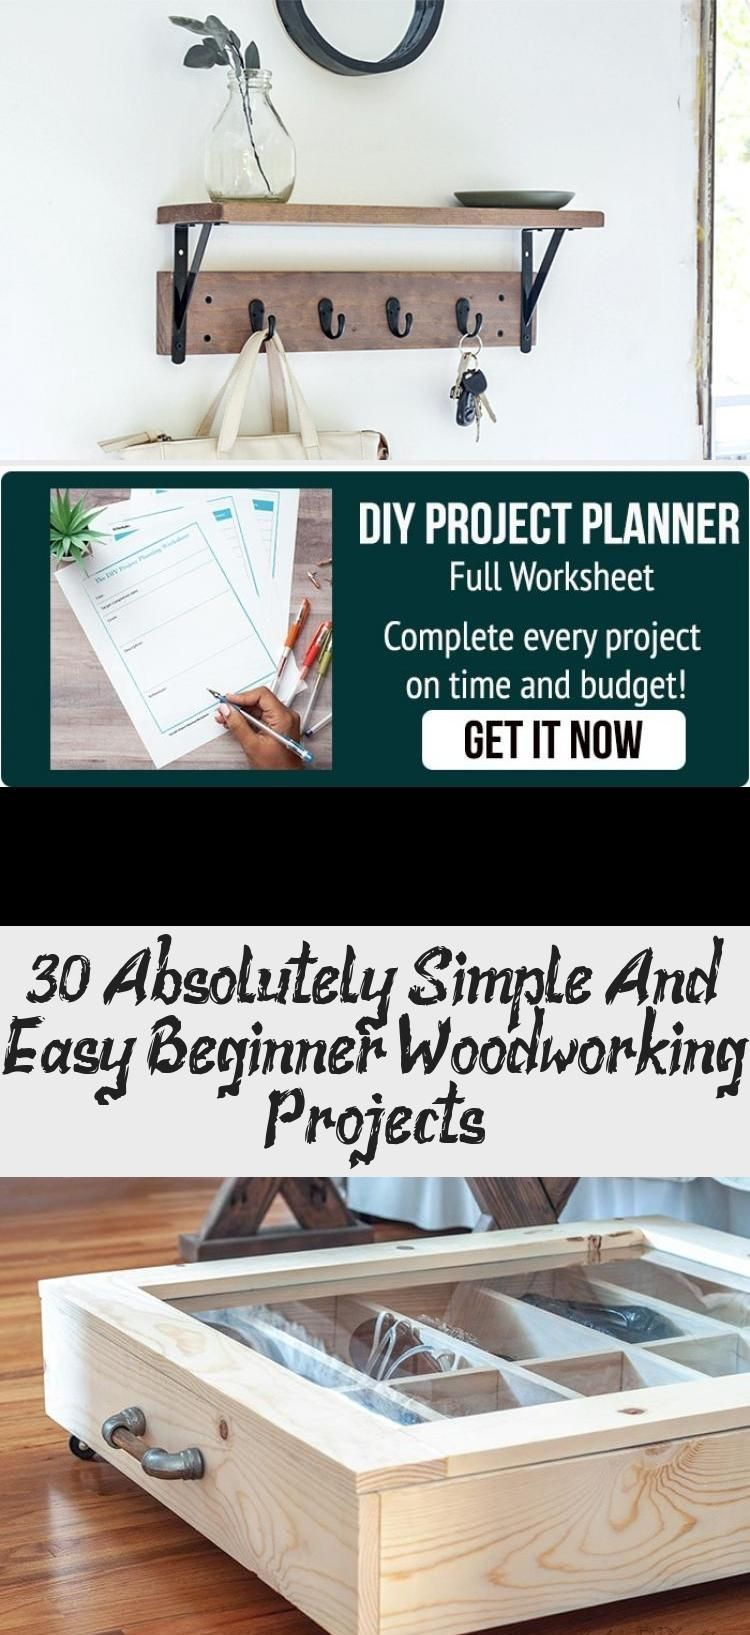 An Amazing Collection Of Diy Beginner Woodworking Projects That Are Easy And Sim Cedar Woodworking Projects Wood Working For Beginners Woodworking Projects [ 1635 x 750 Pixel ]